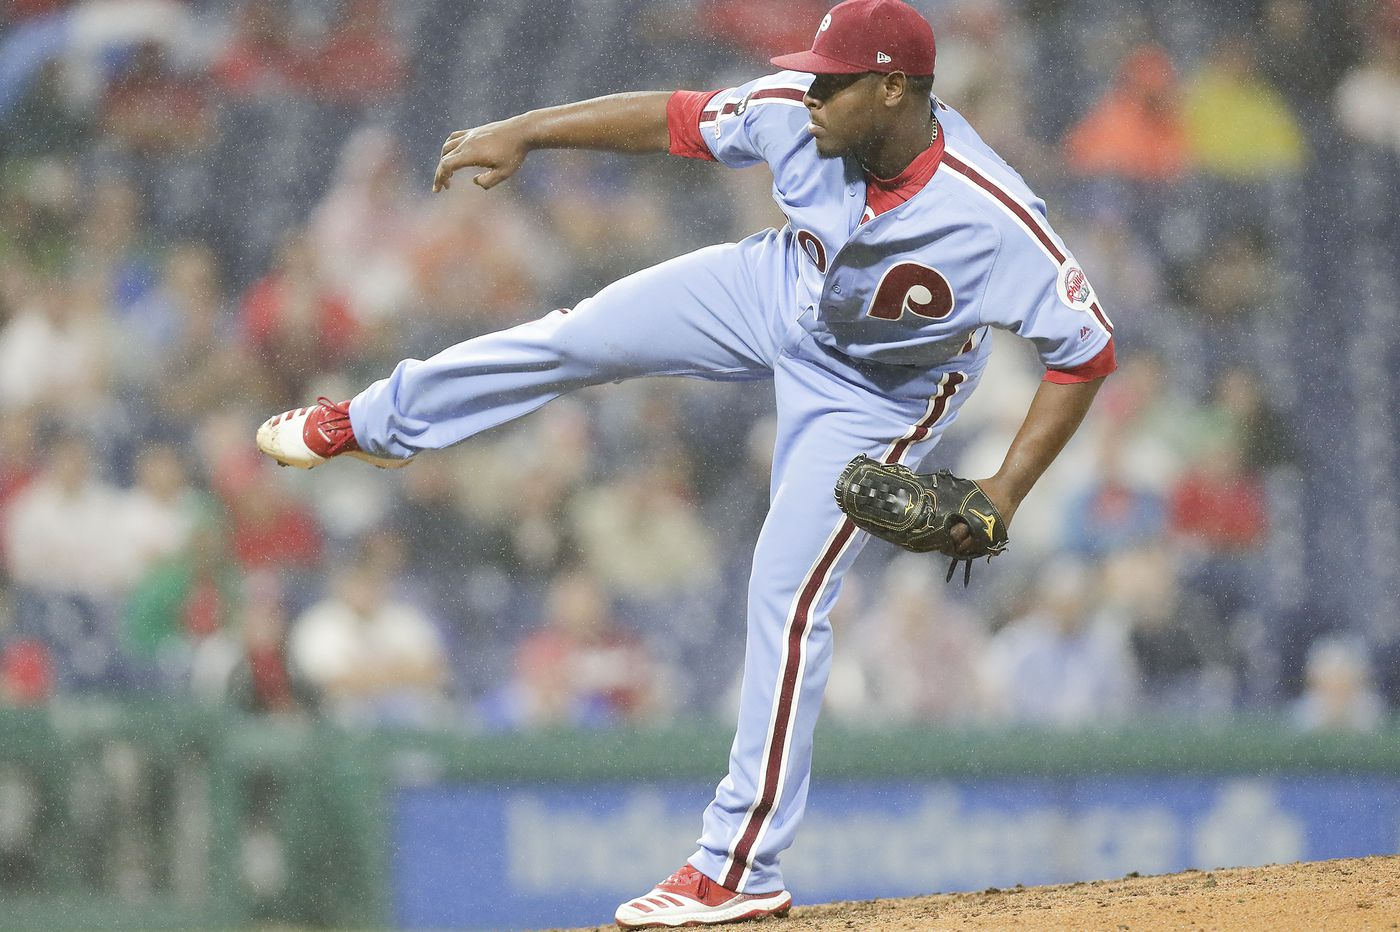 Hector Neris provides four-out save to keep Phillies in wild-card race